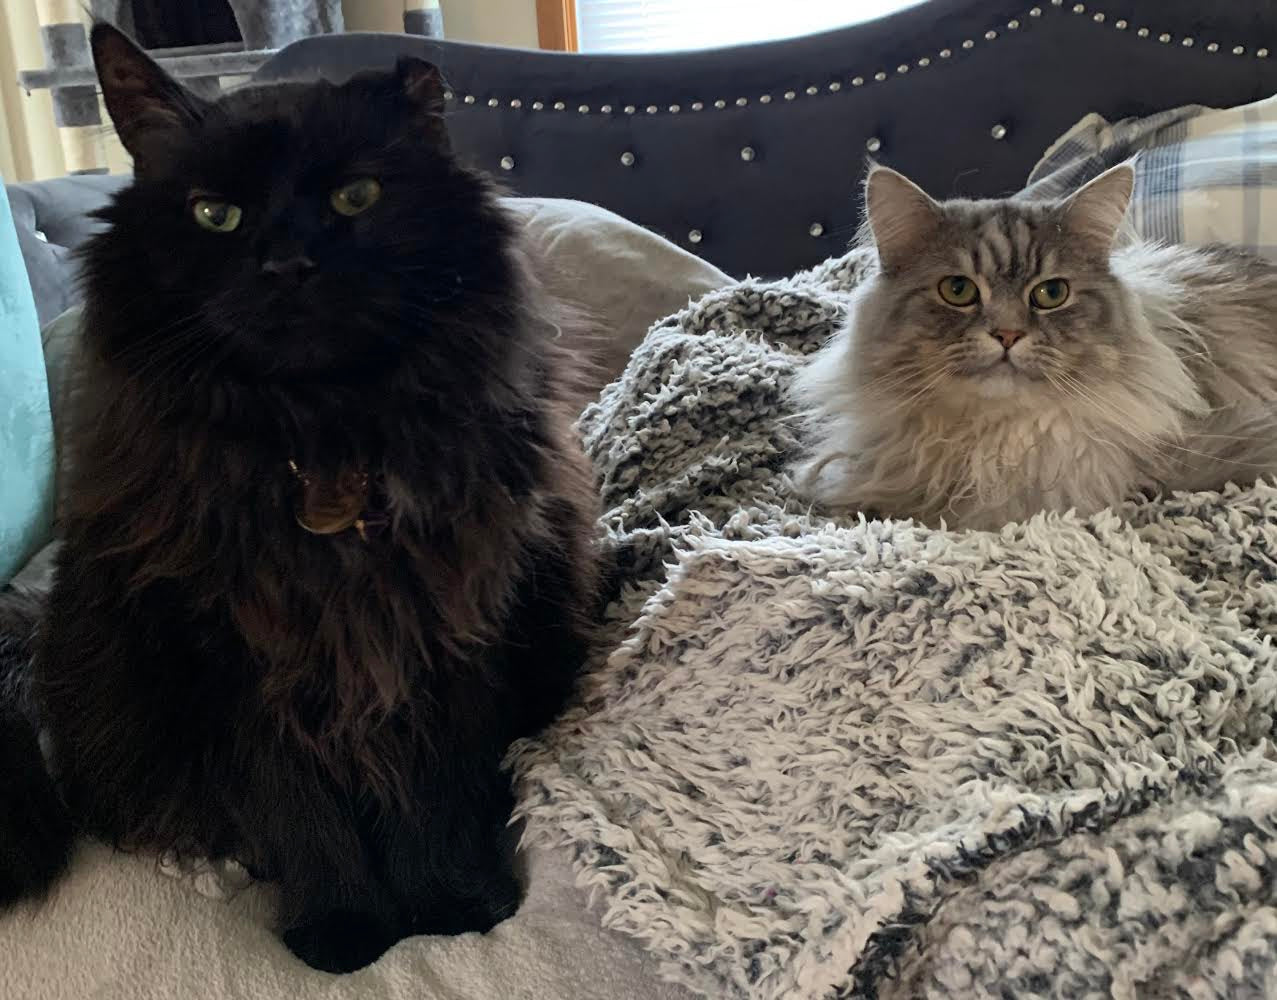 Long-haired black cat Salem and long-haired grey cat Thumper sit side-by-side on a fluffy blanket.